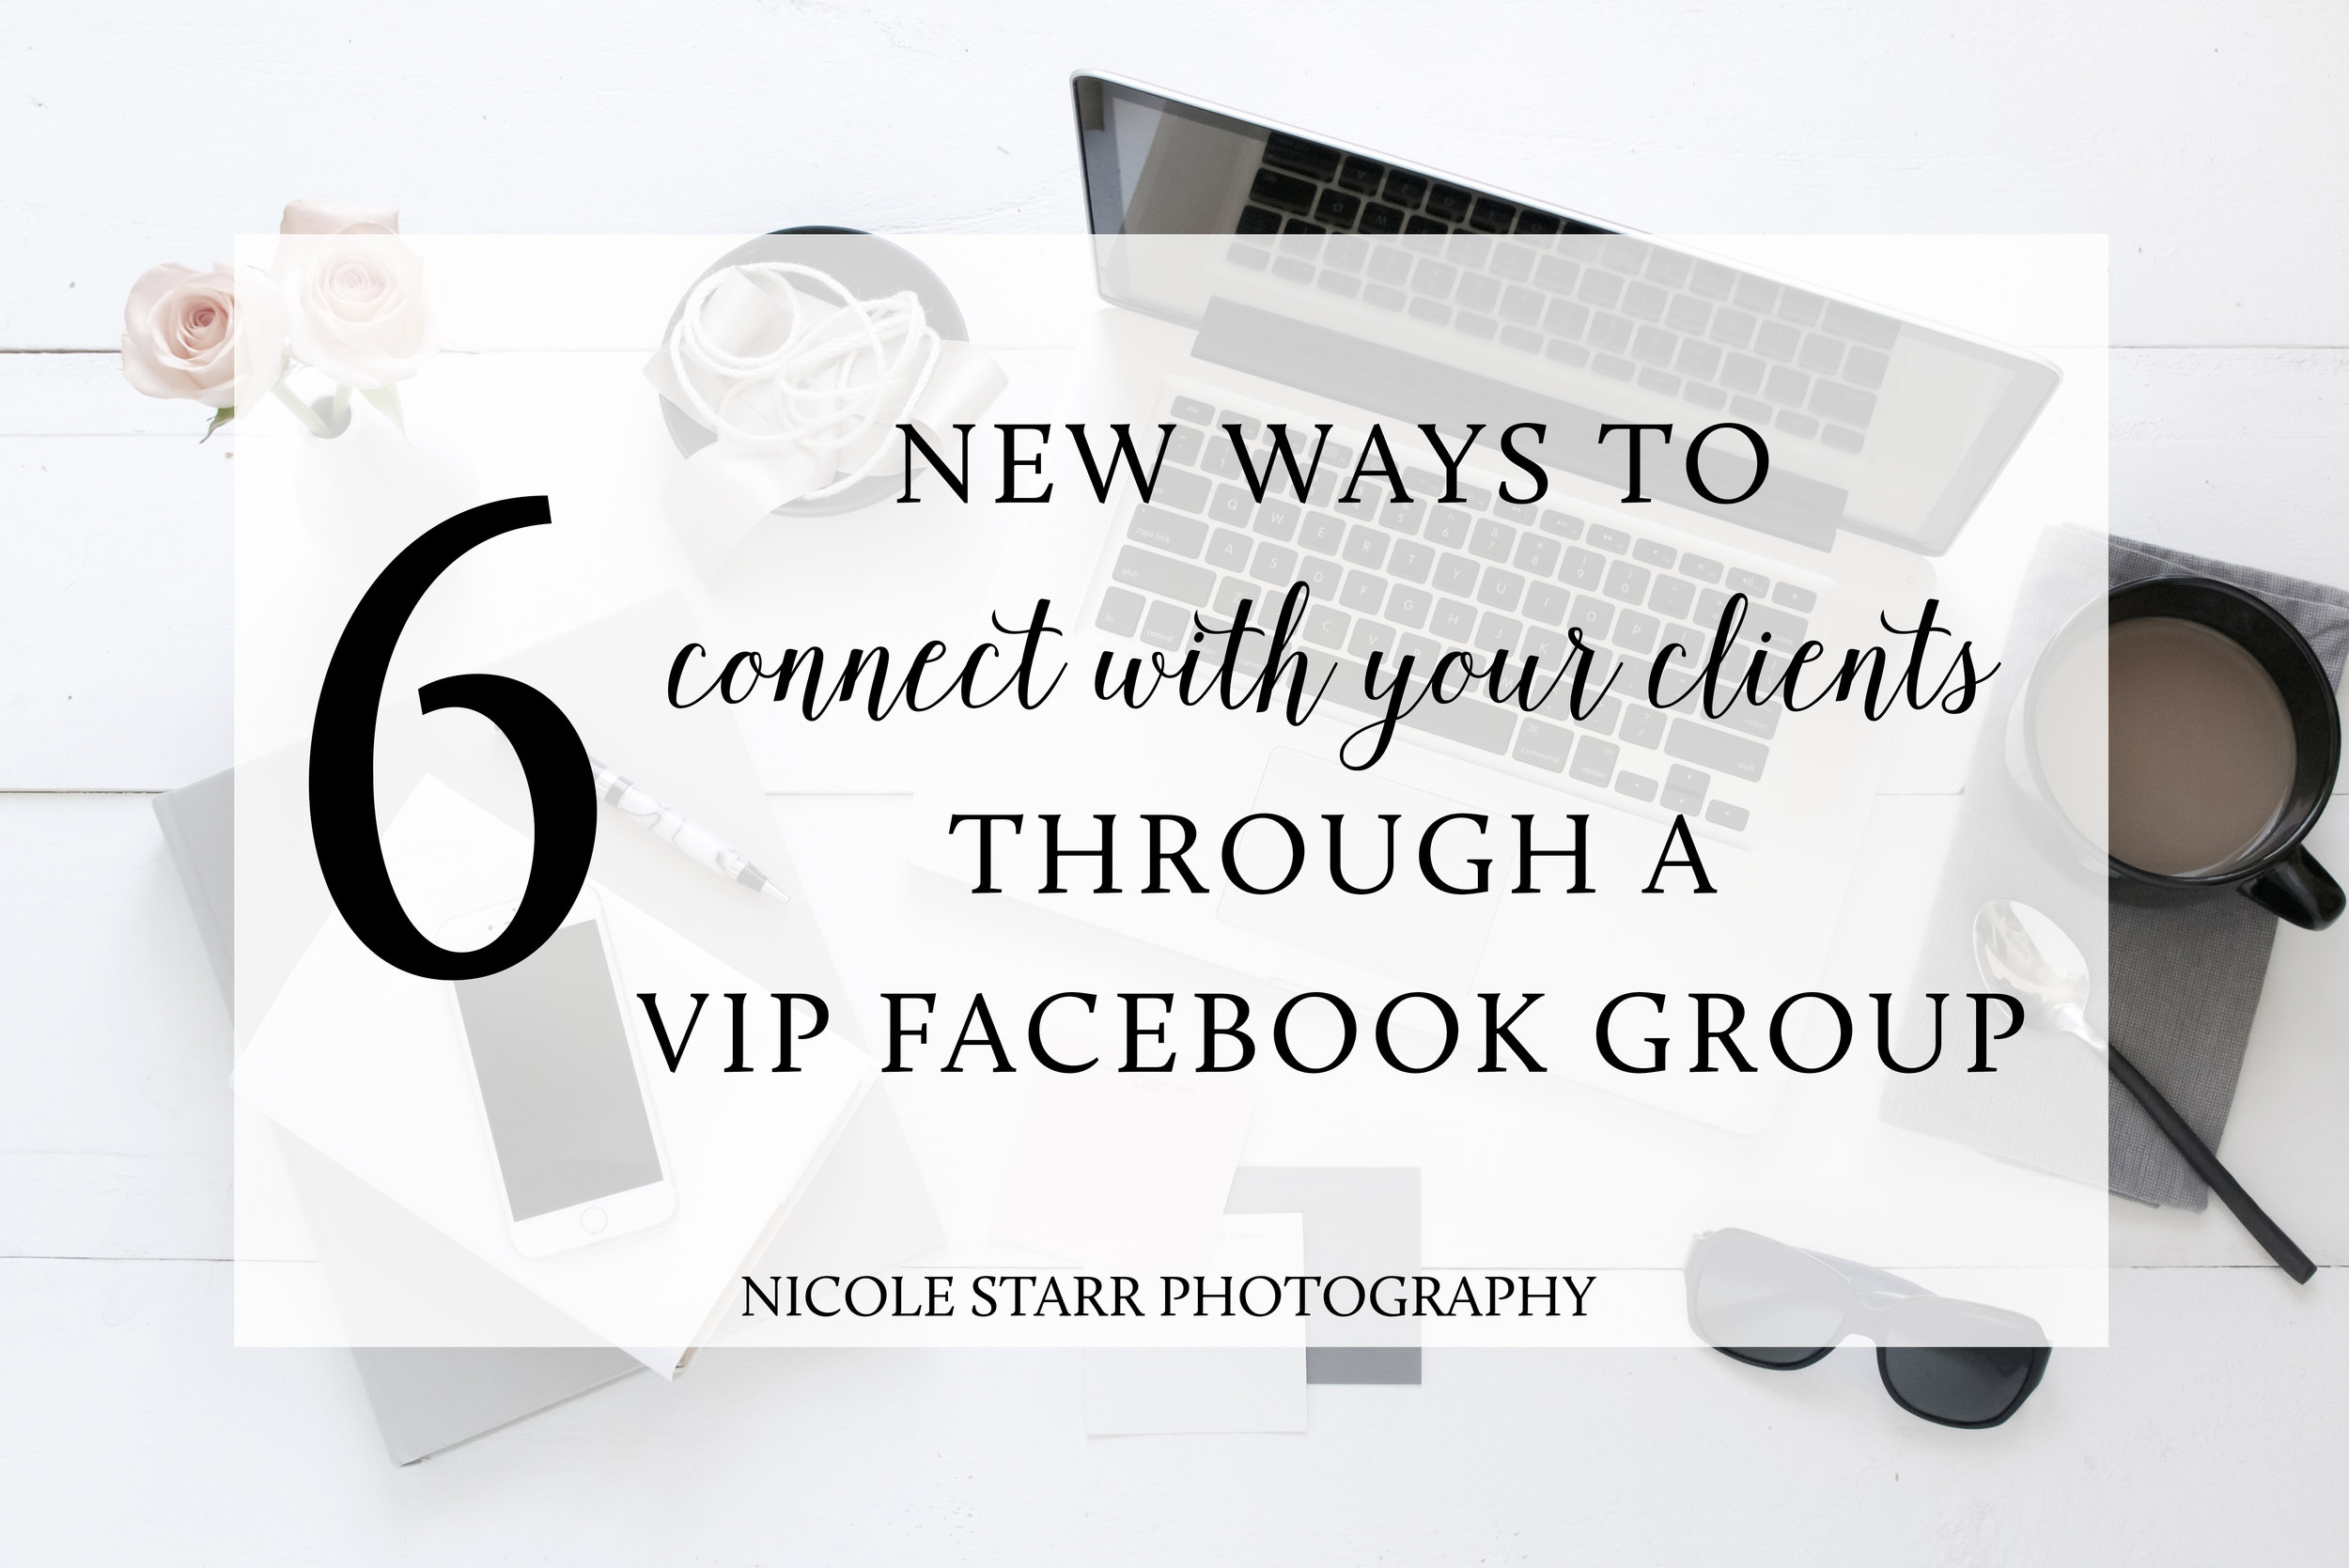 marketing to ideal clients through facebook by nicole starr photography